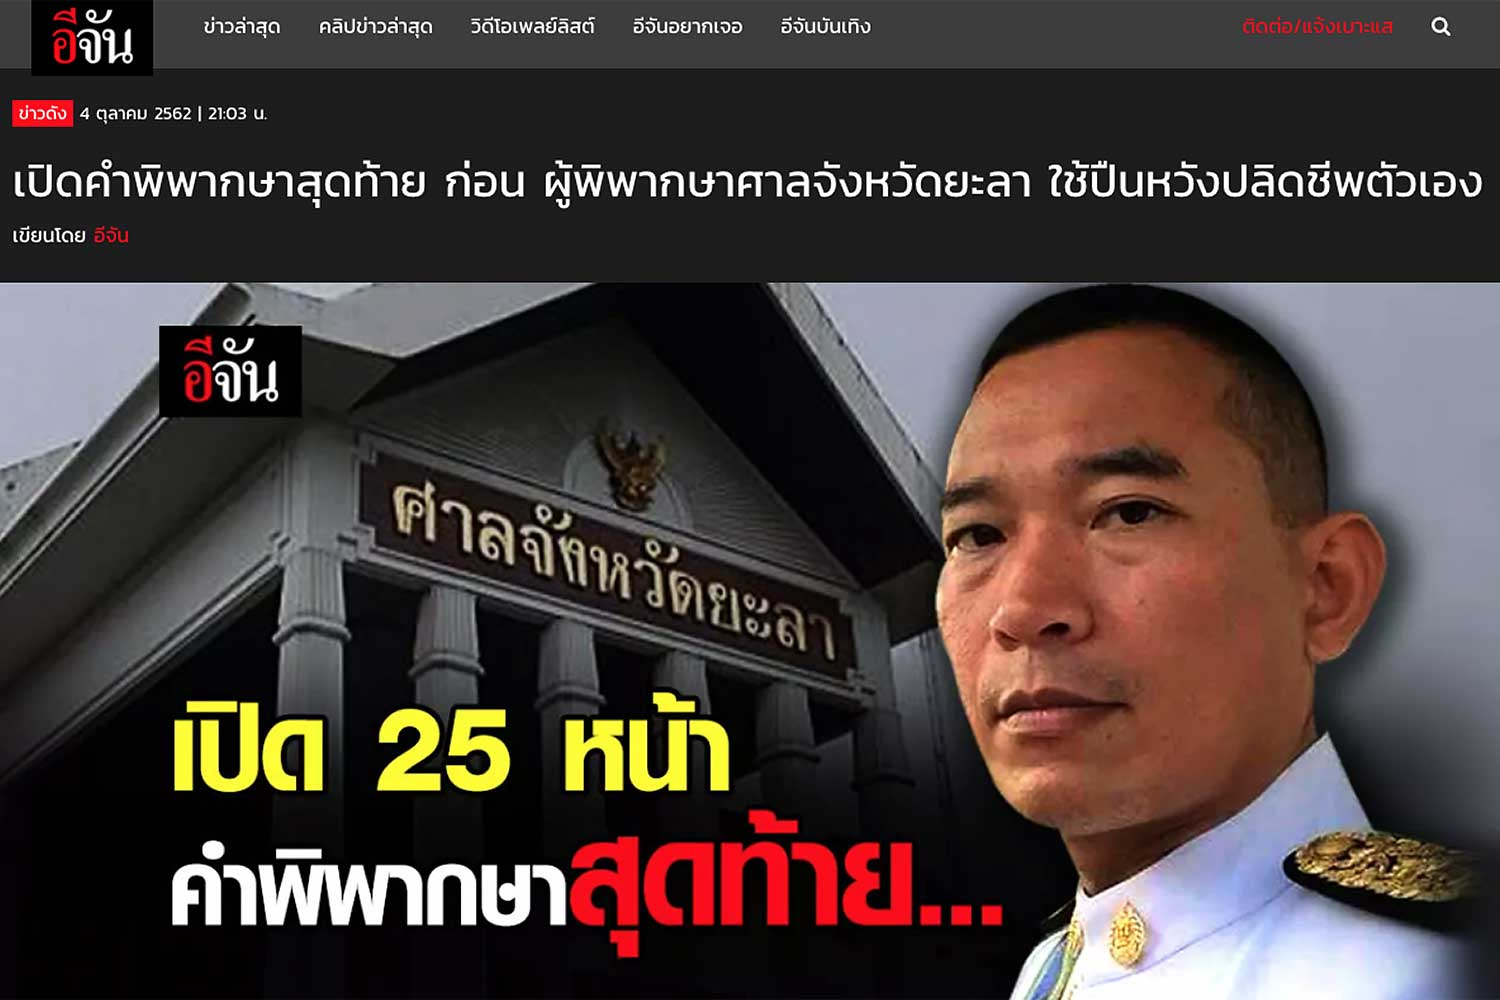 A post on the E-jan webpage features the self-shooting of Judge Khanakorn Pianchana who accused senior judges of intervening in a case.